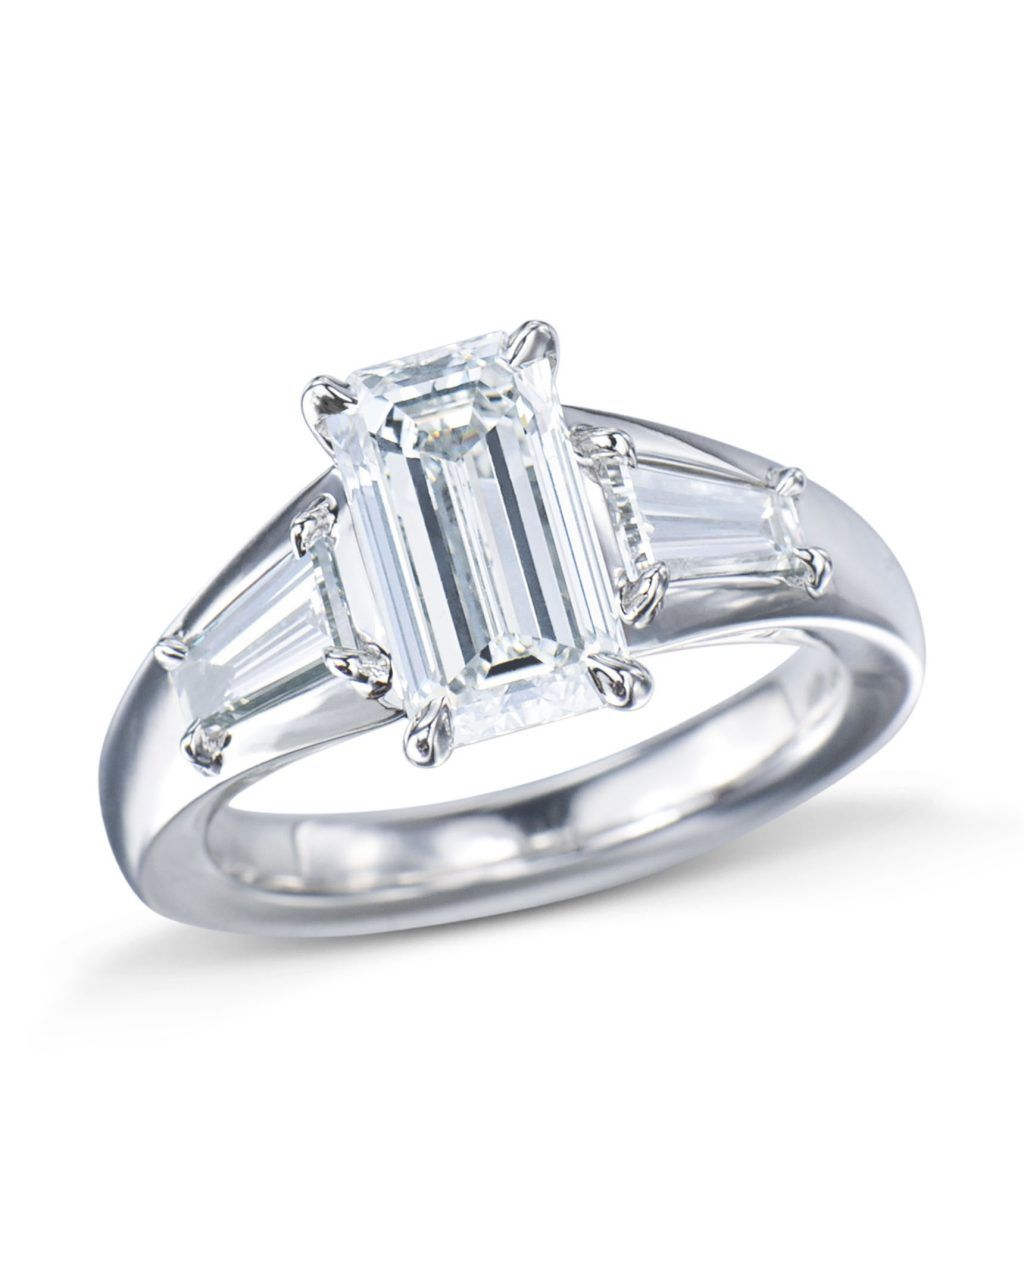 33bb5ad28 A modern emerald cut diamond engagement ring with a unique design  twist.Expertly made in precious platinum with a bold tapered band that  embraces a stunning ...